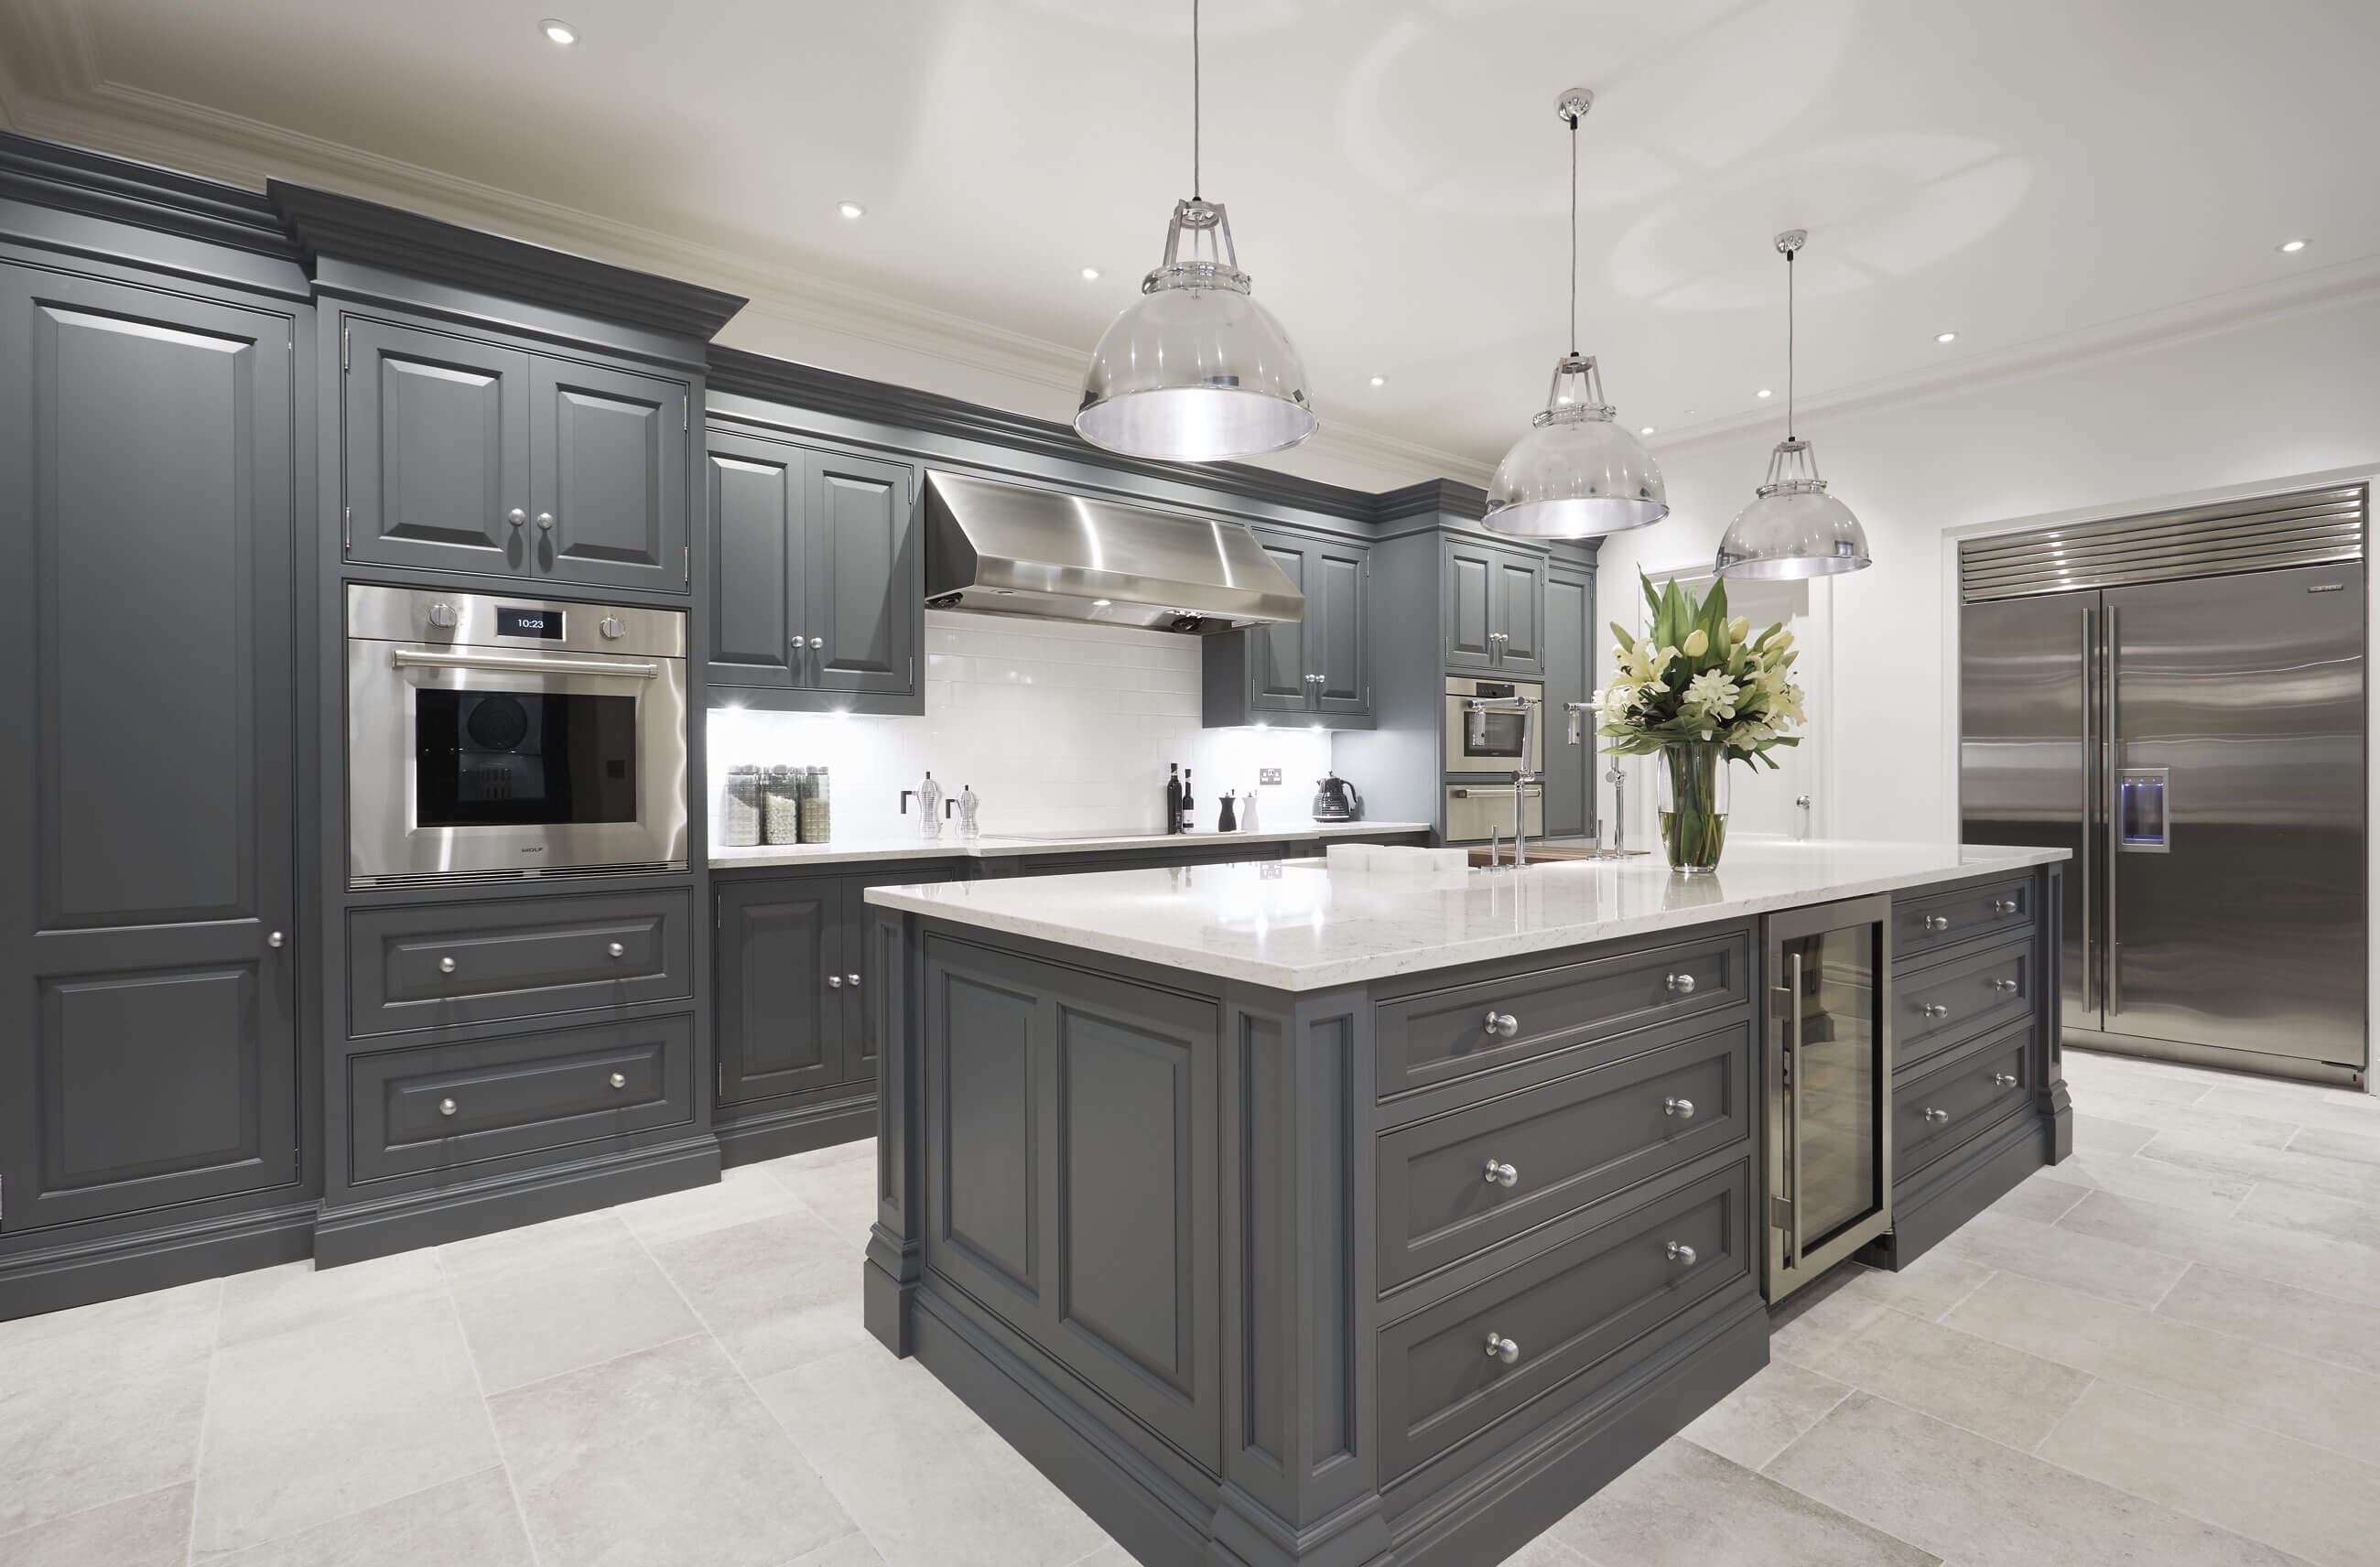 designer kitchen image luxury grey kitchen tom howley 448